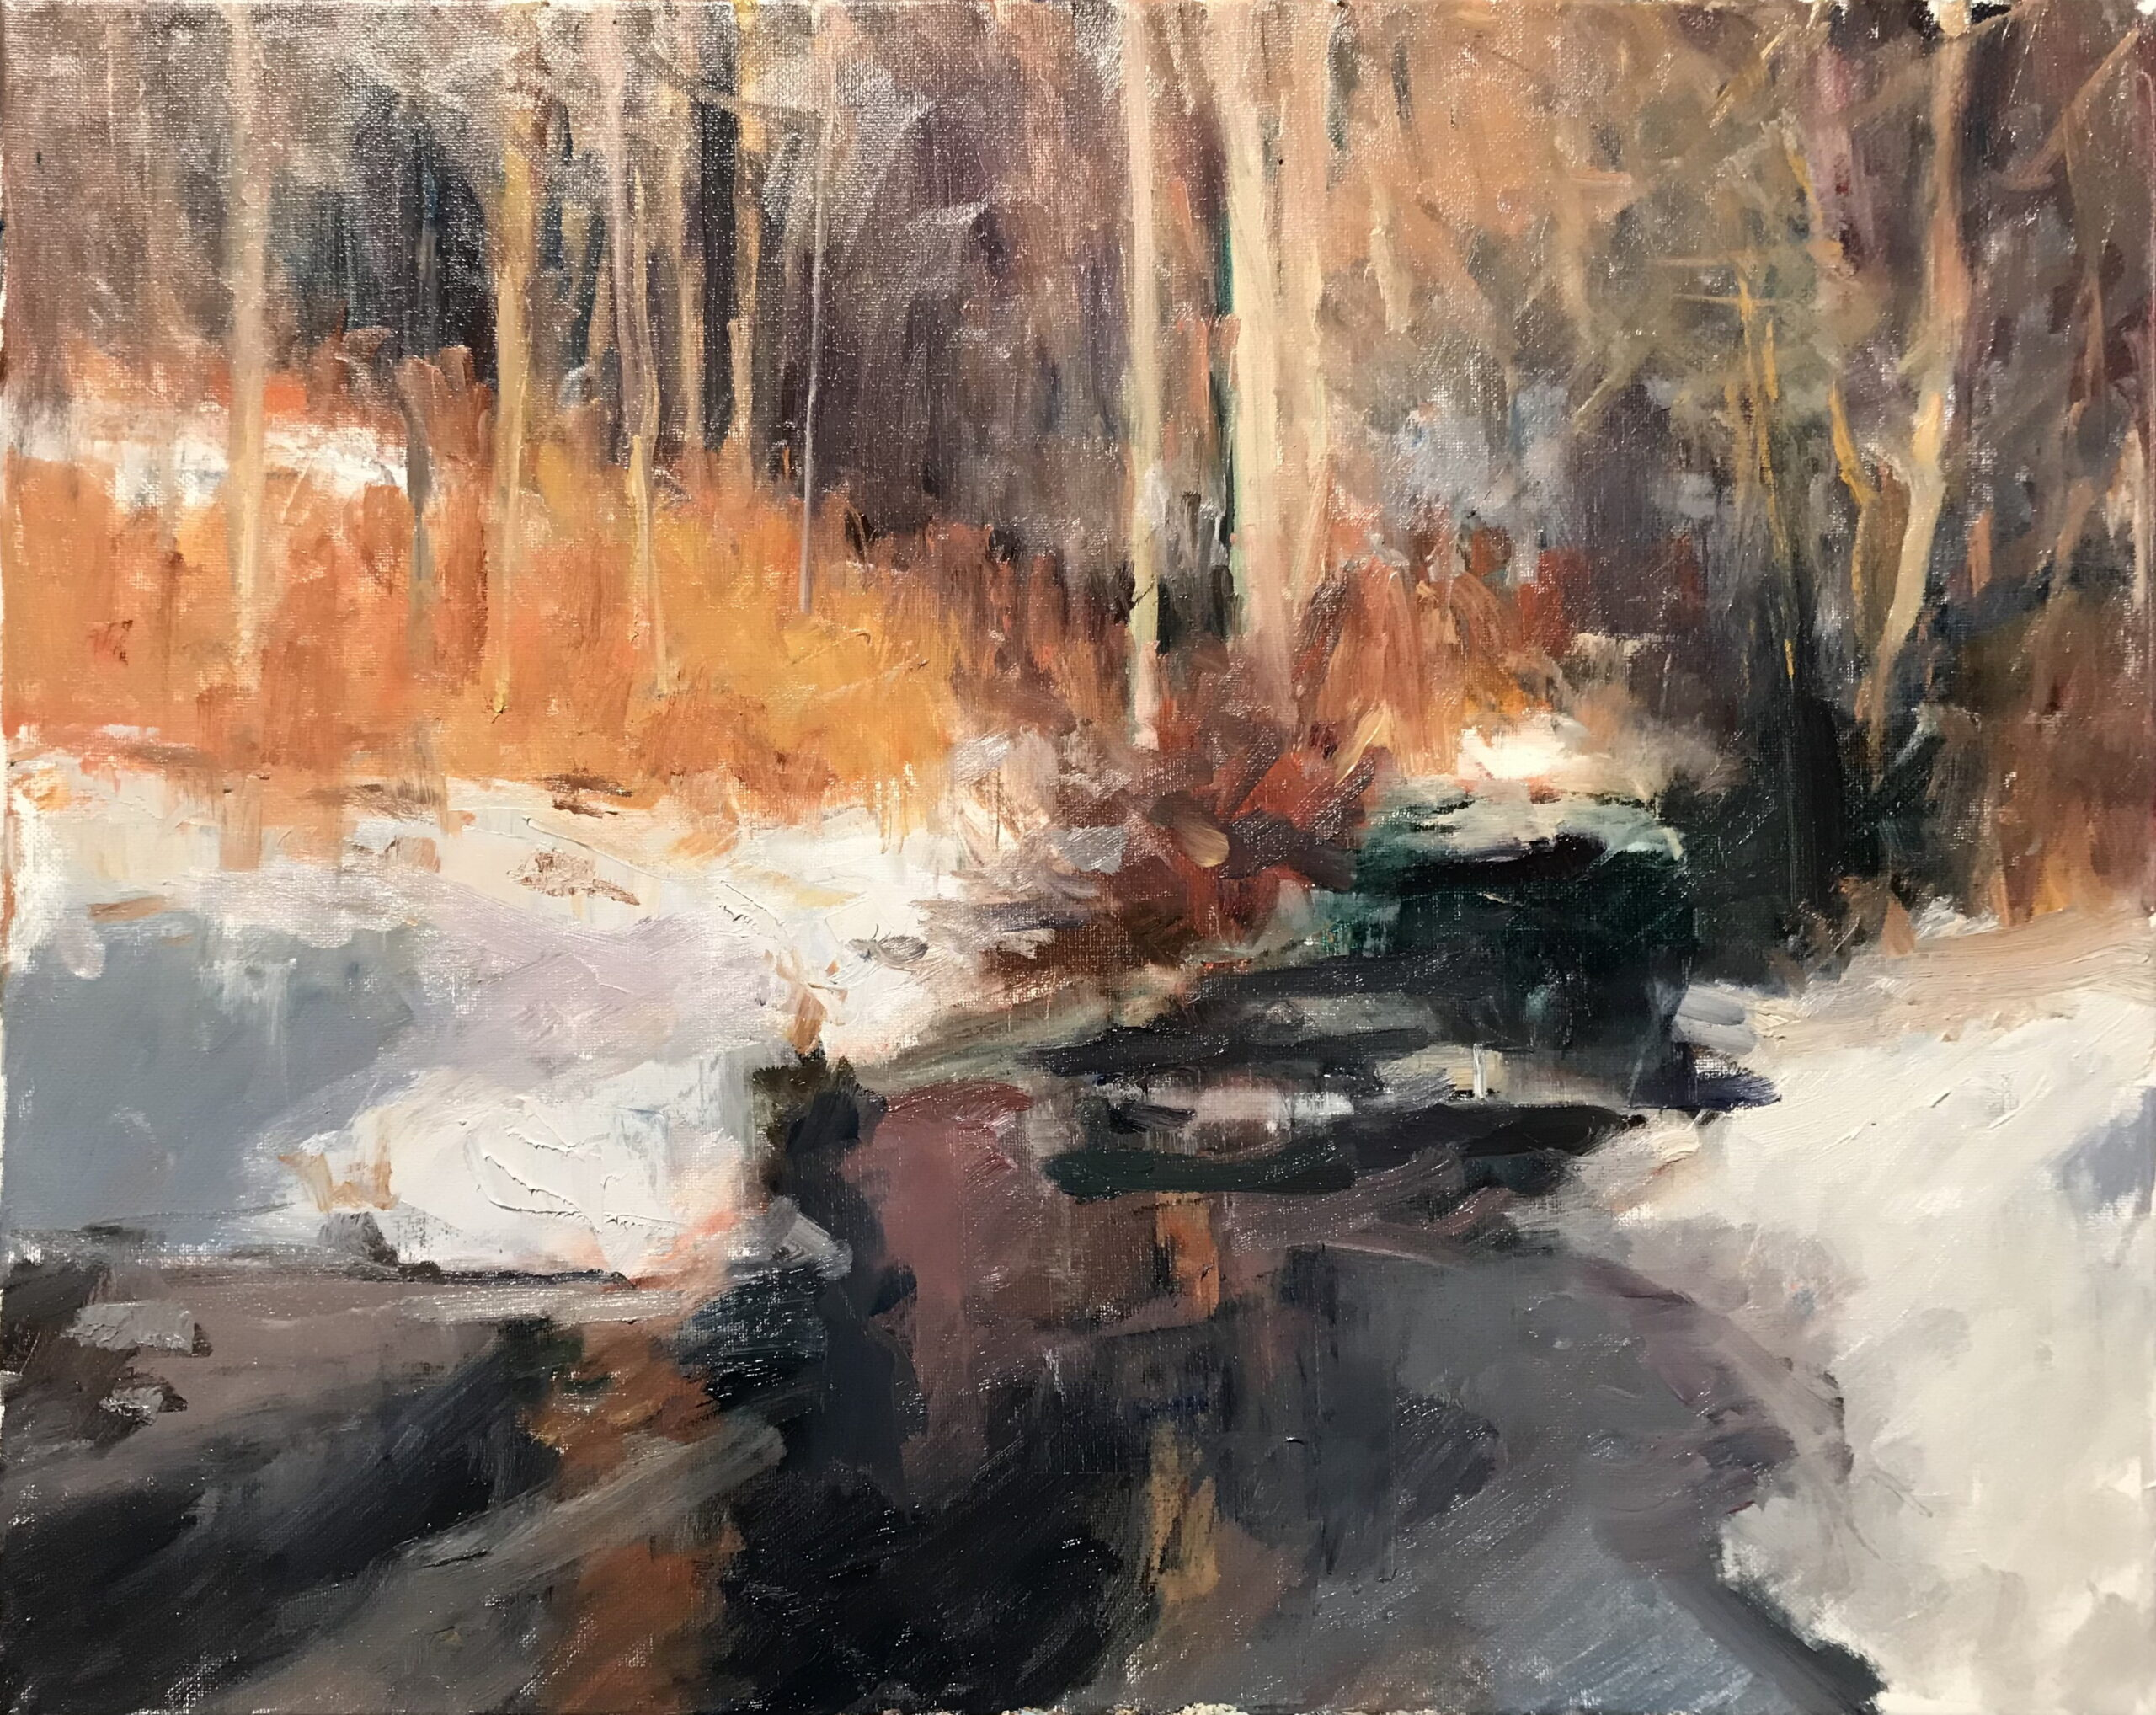 Brook in February, Oil on Canvas, 16 x 20 Inches, by Susan Grisell, $550